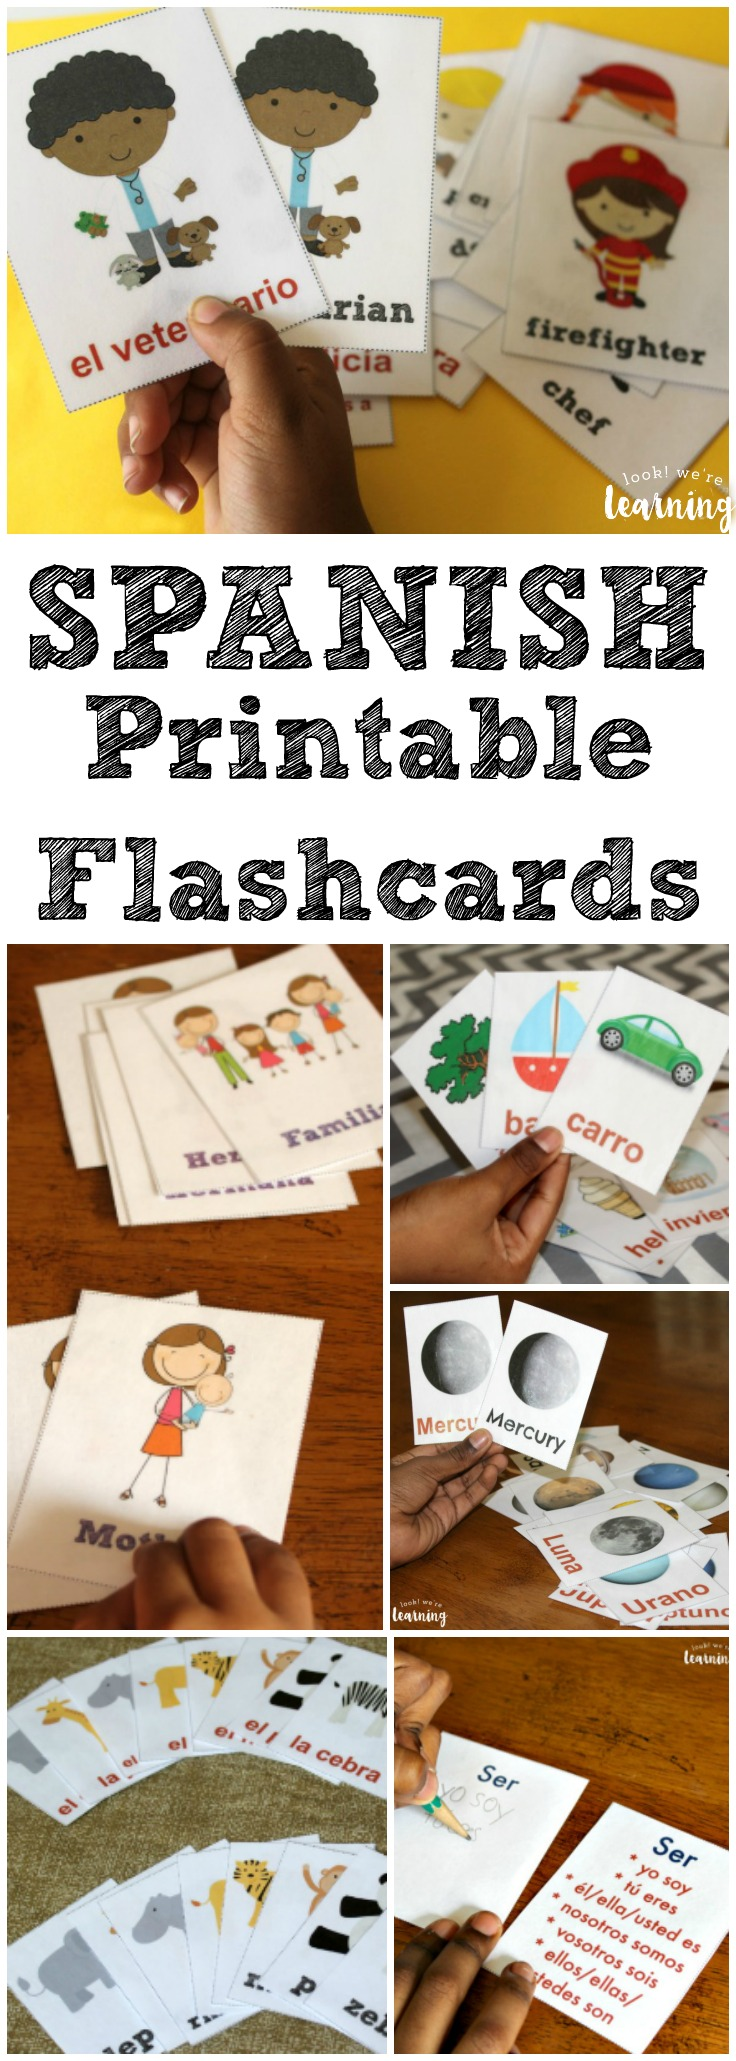 image relating to Spanish Flashcards Printable titled Printable Spanish Flashcards - Glimpse! Had been Finding out!